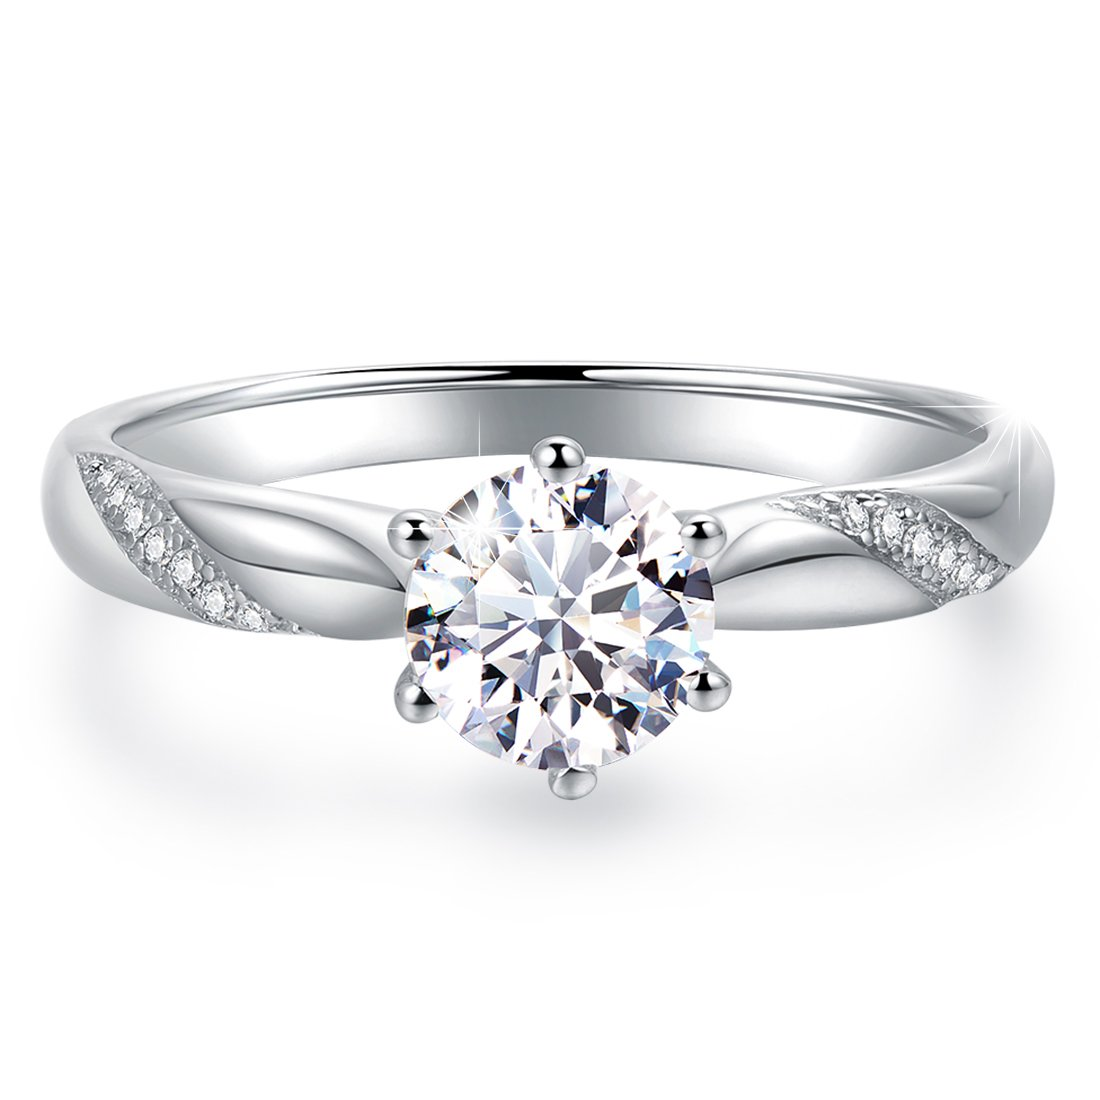 Stunning Flame Solitaire Engagement Ring White Gold Plated Sterling Silver Cubic Zirconia Wedding for Women | Excellent Cut D Color FL Clarity & Exquisite Polish